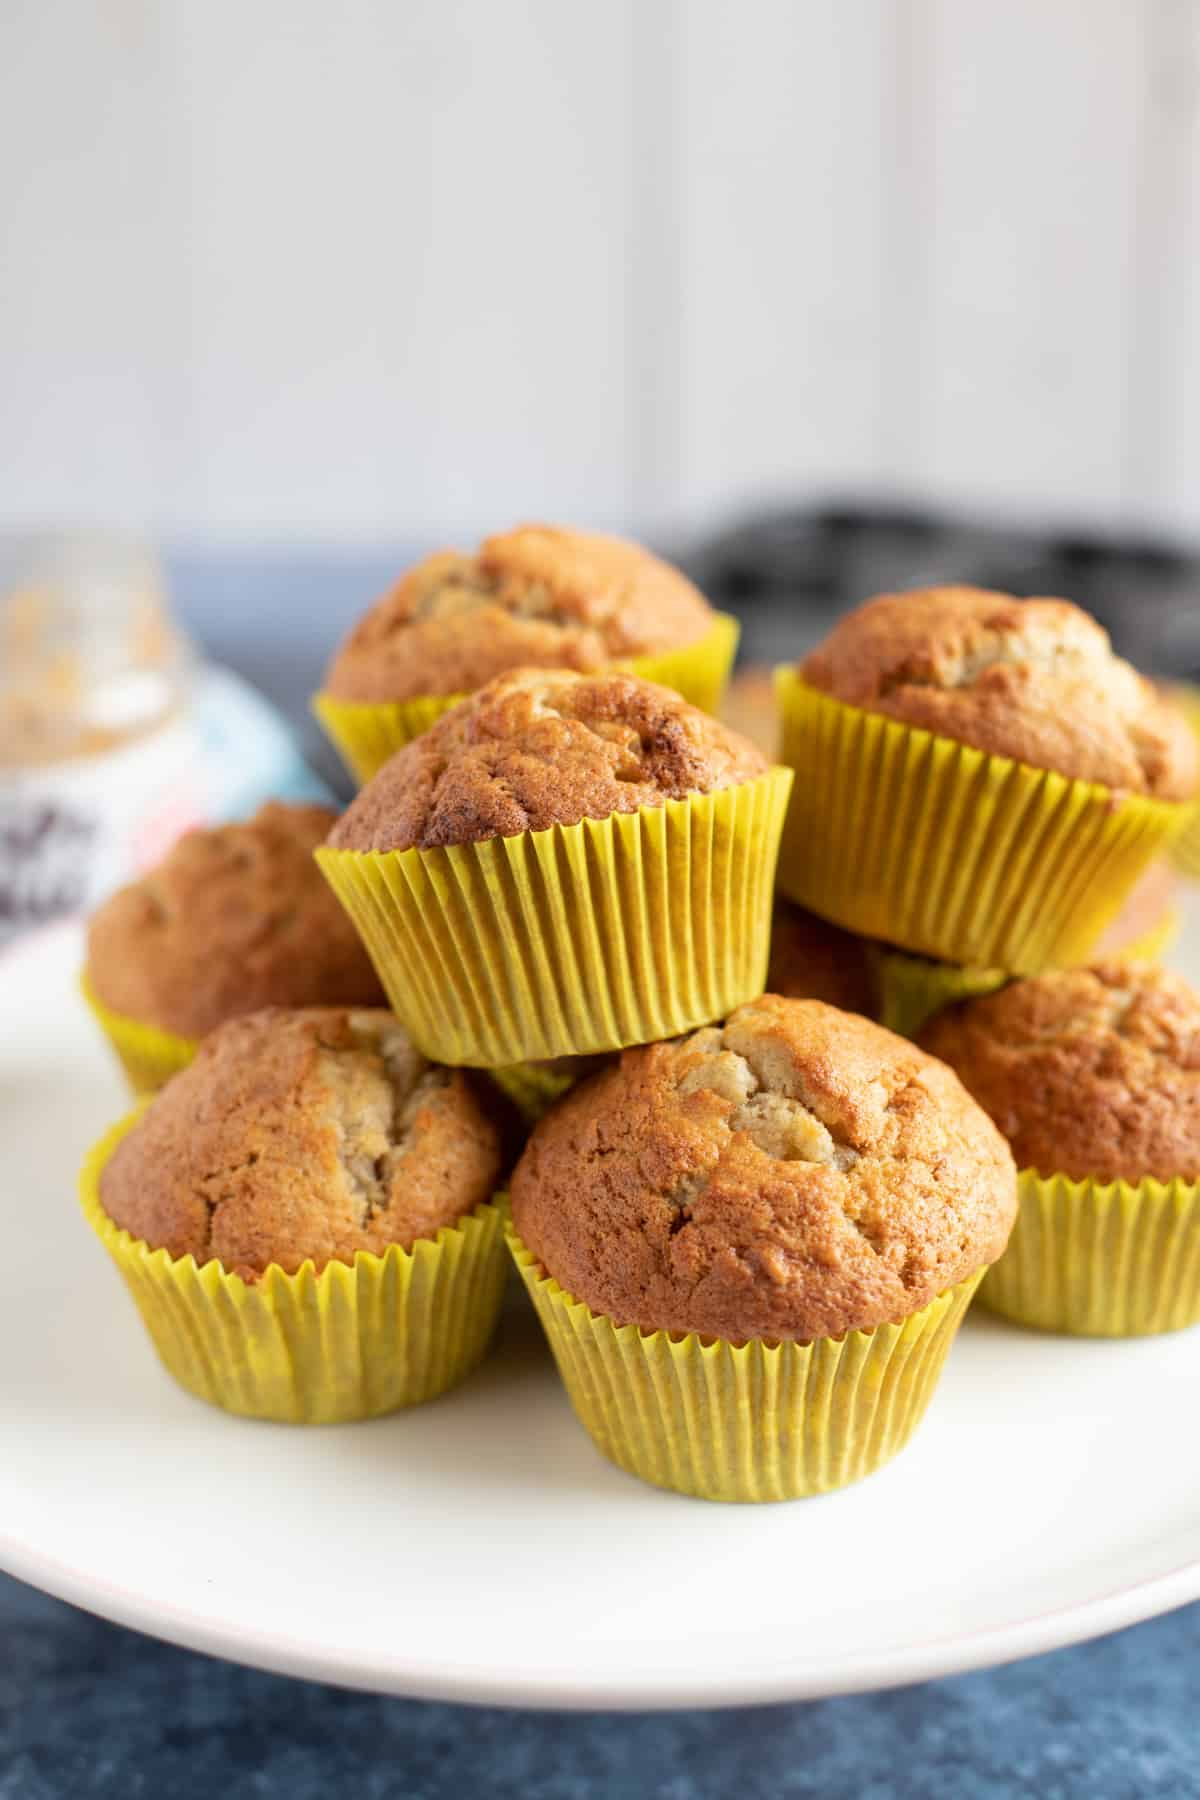 Peanut butter and banana muffins on a cake stand.